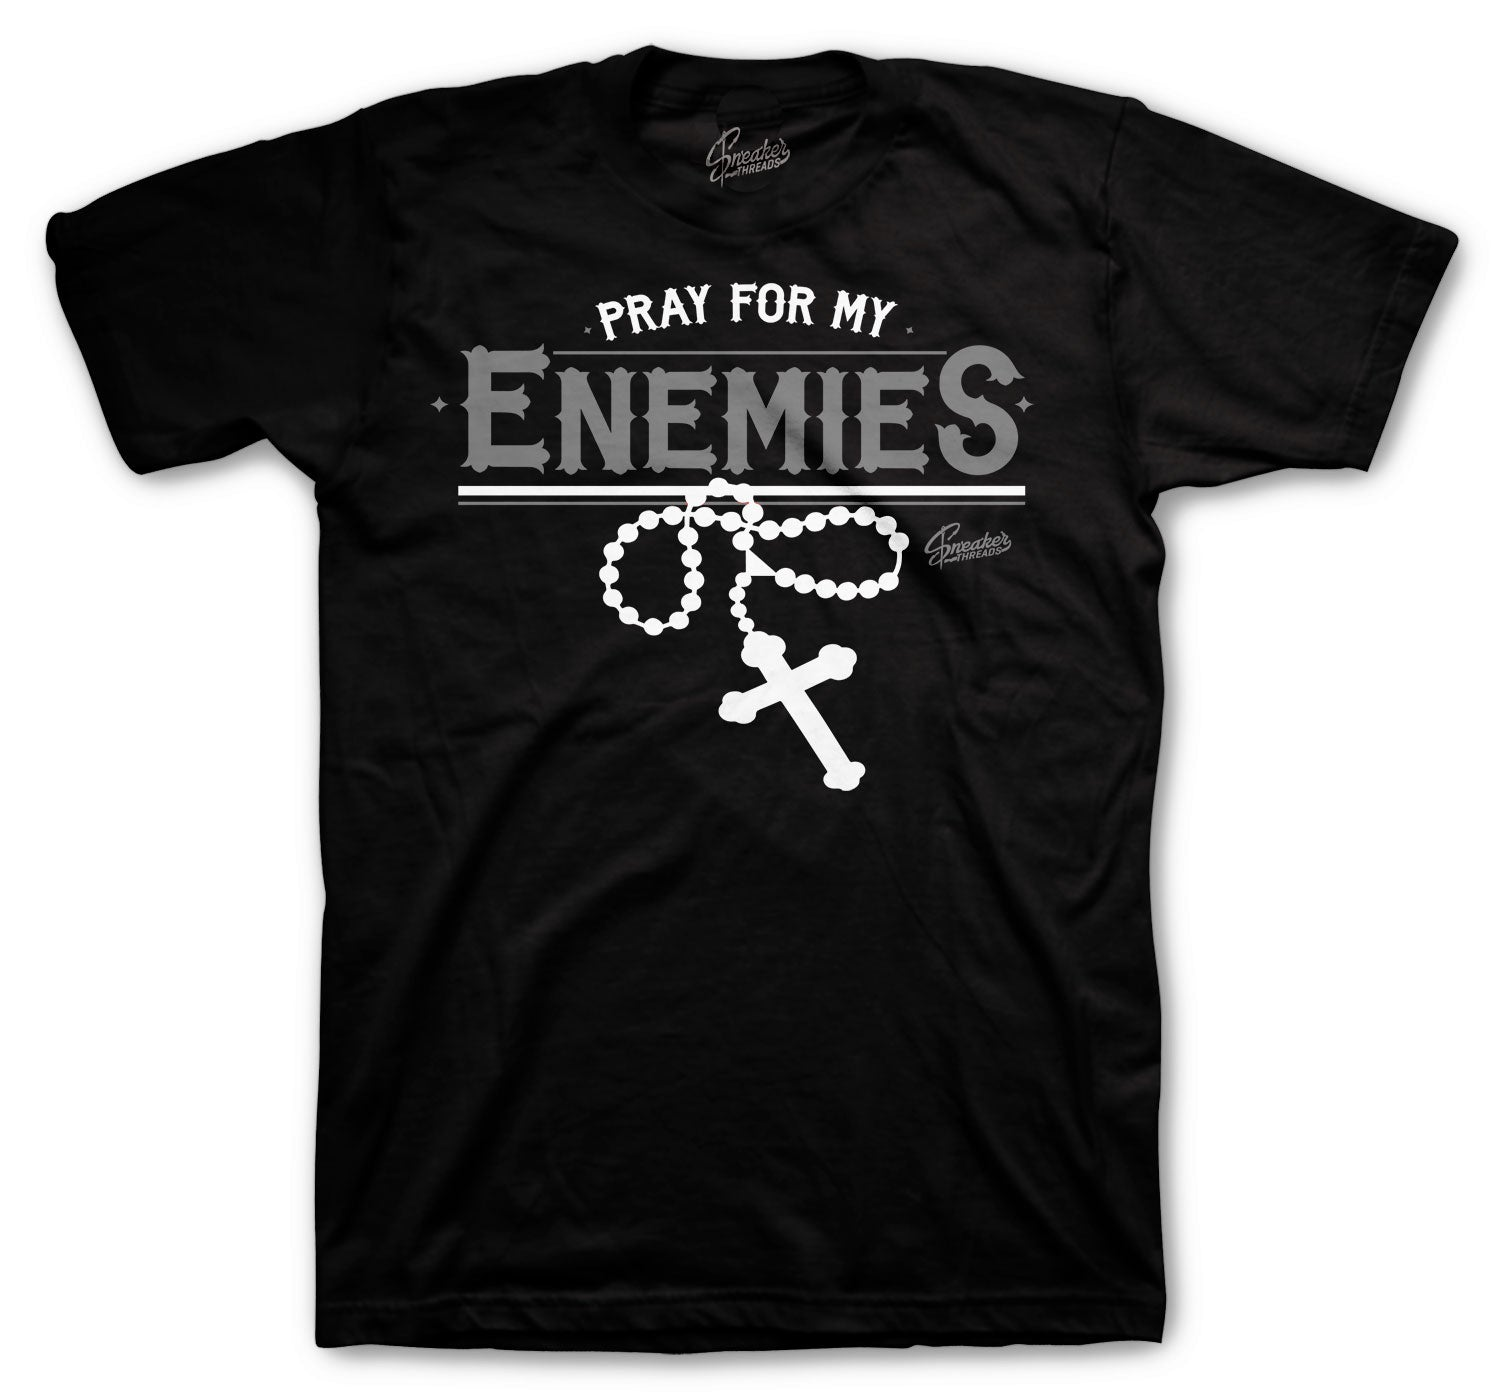 Mini Foamposite Swoosh Enemies Black Tee to match perfect